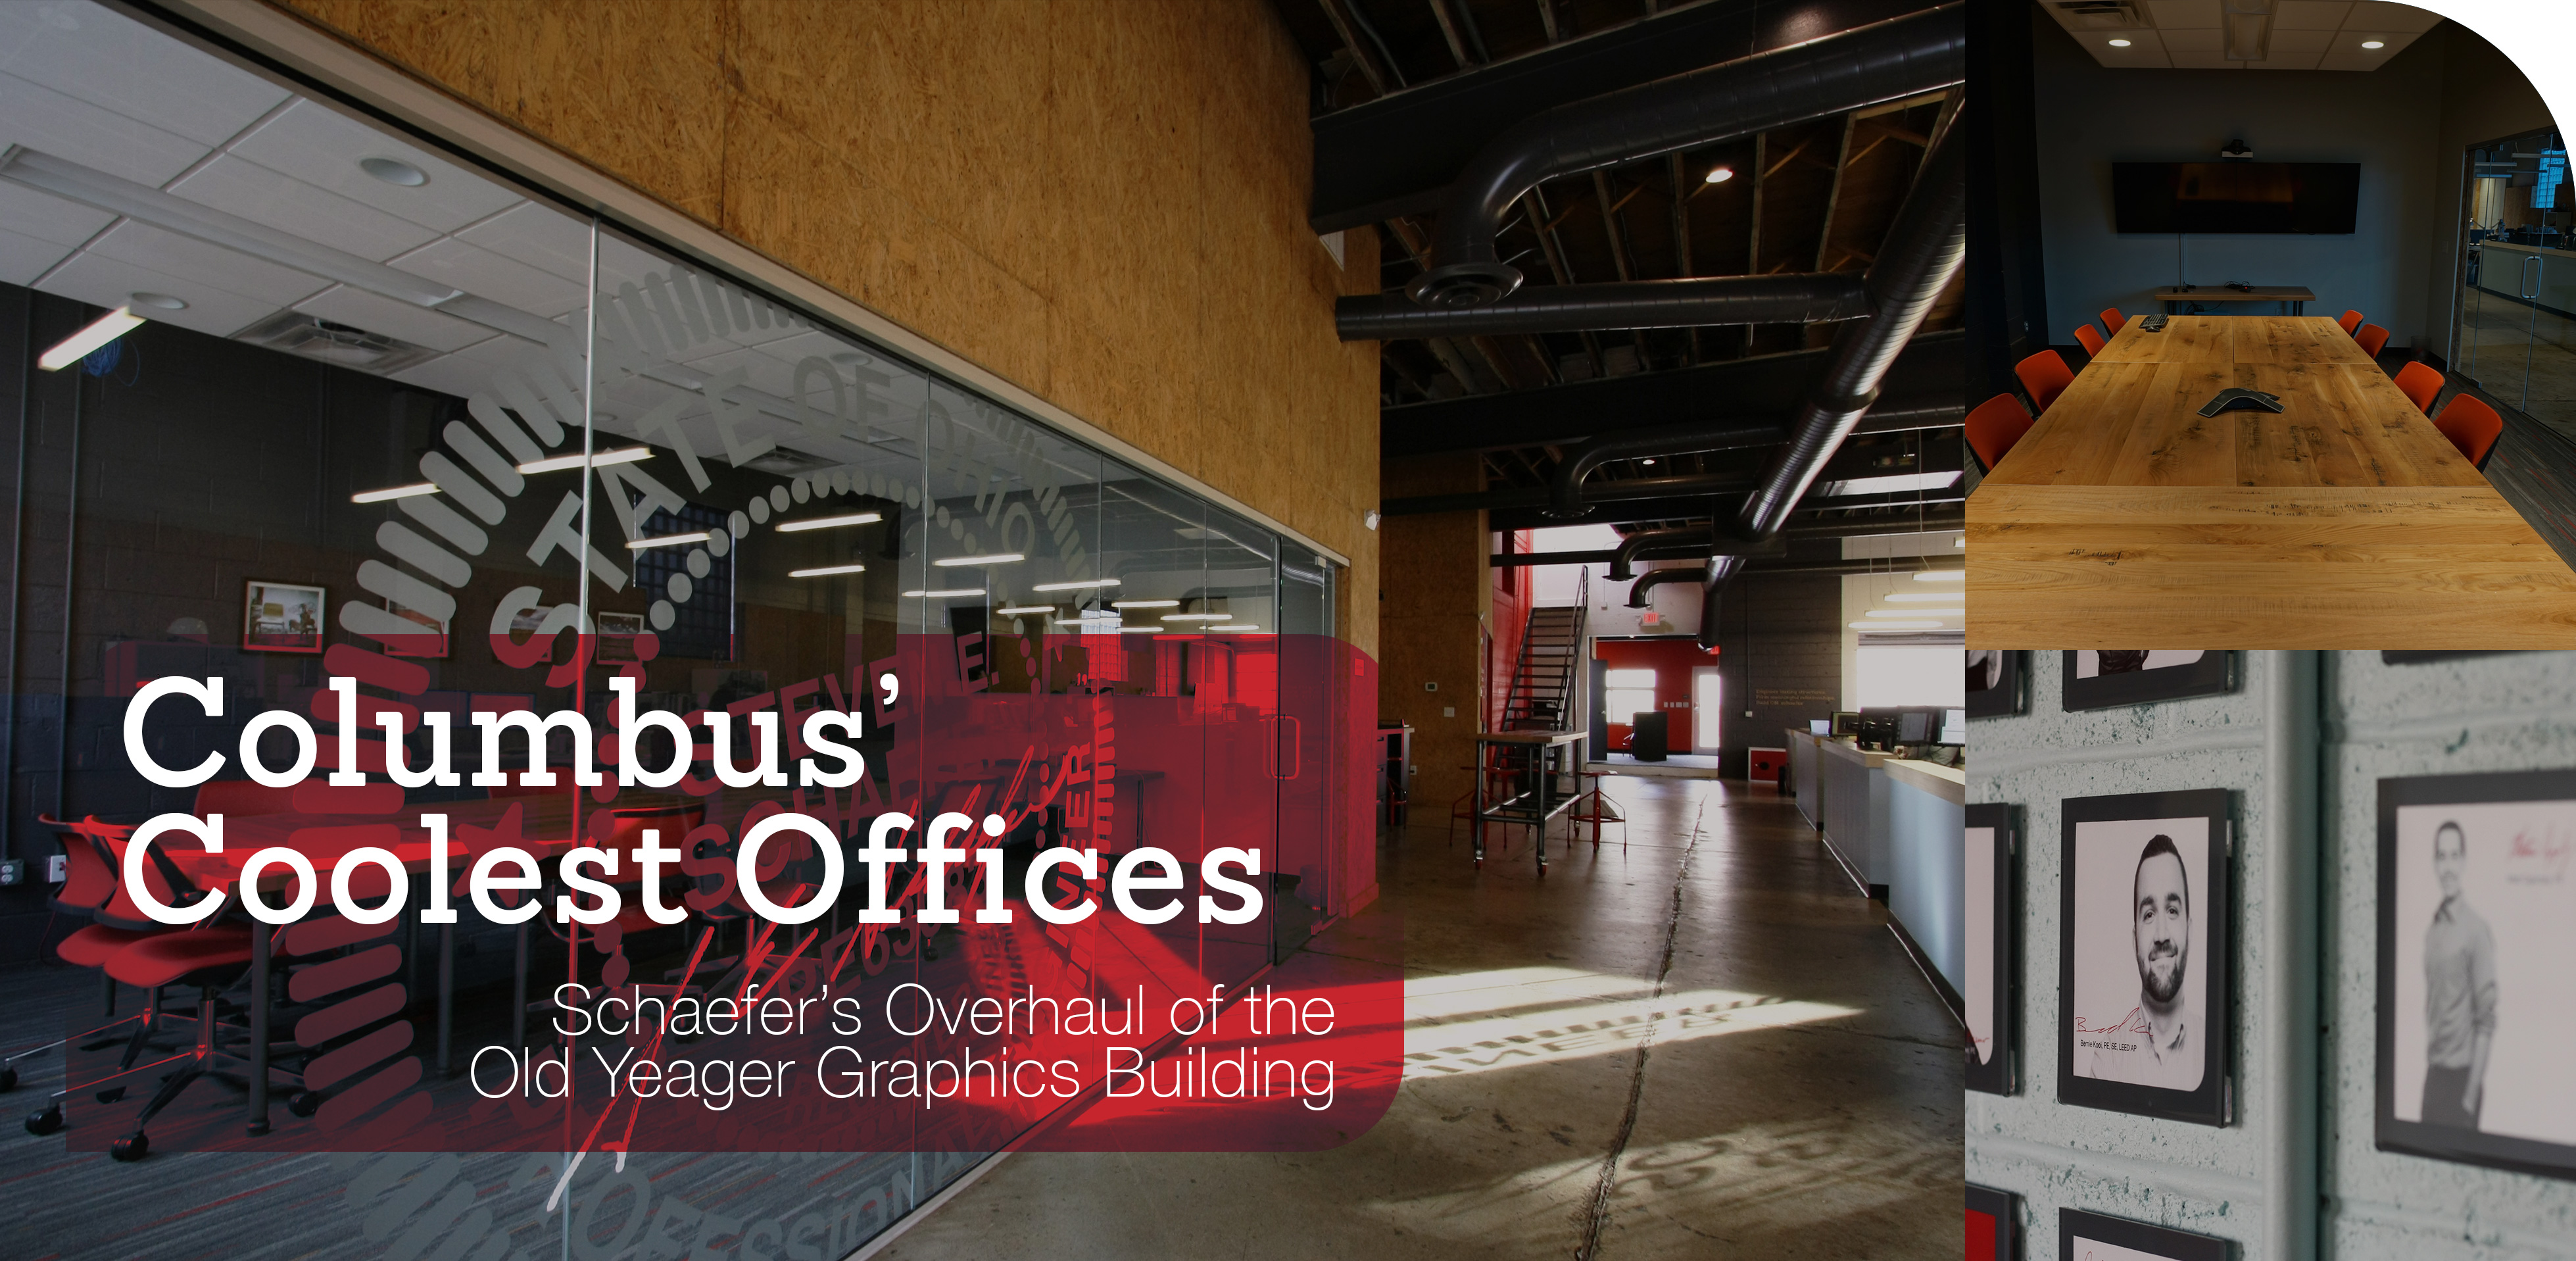 Columbus' Coolest Offices - Schaefer's Overhaul of the Old Yeager Graphics Building